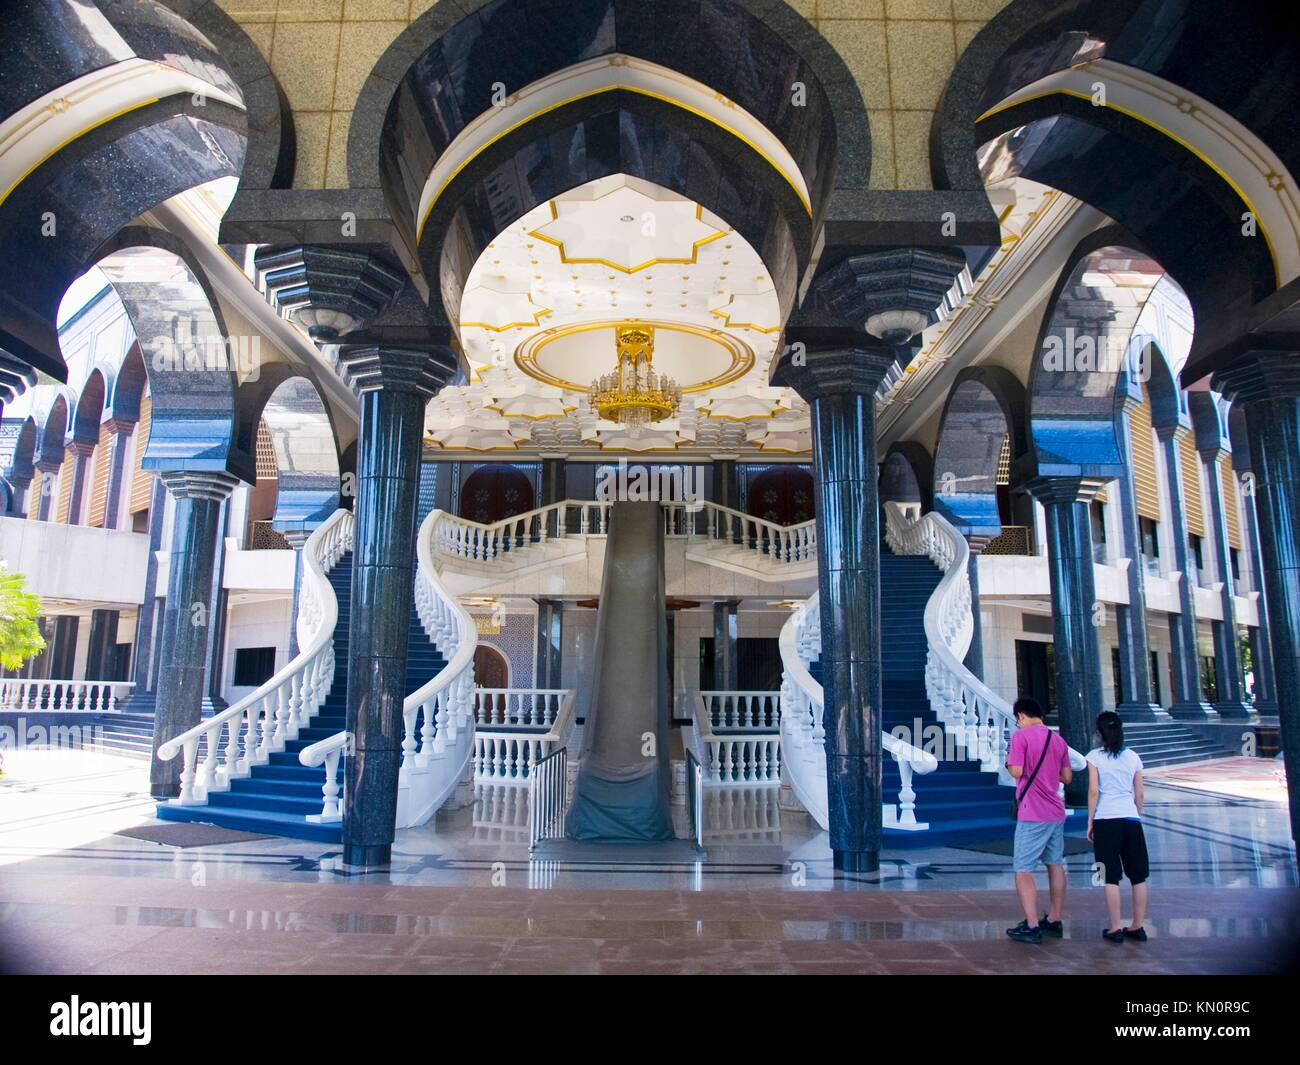 Brunei Stairs at Mosque - Stock Image